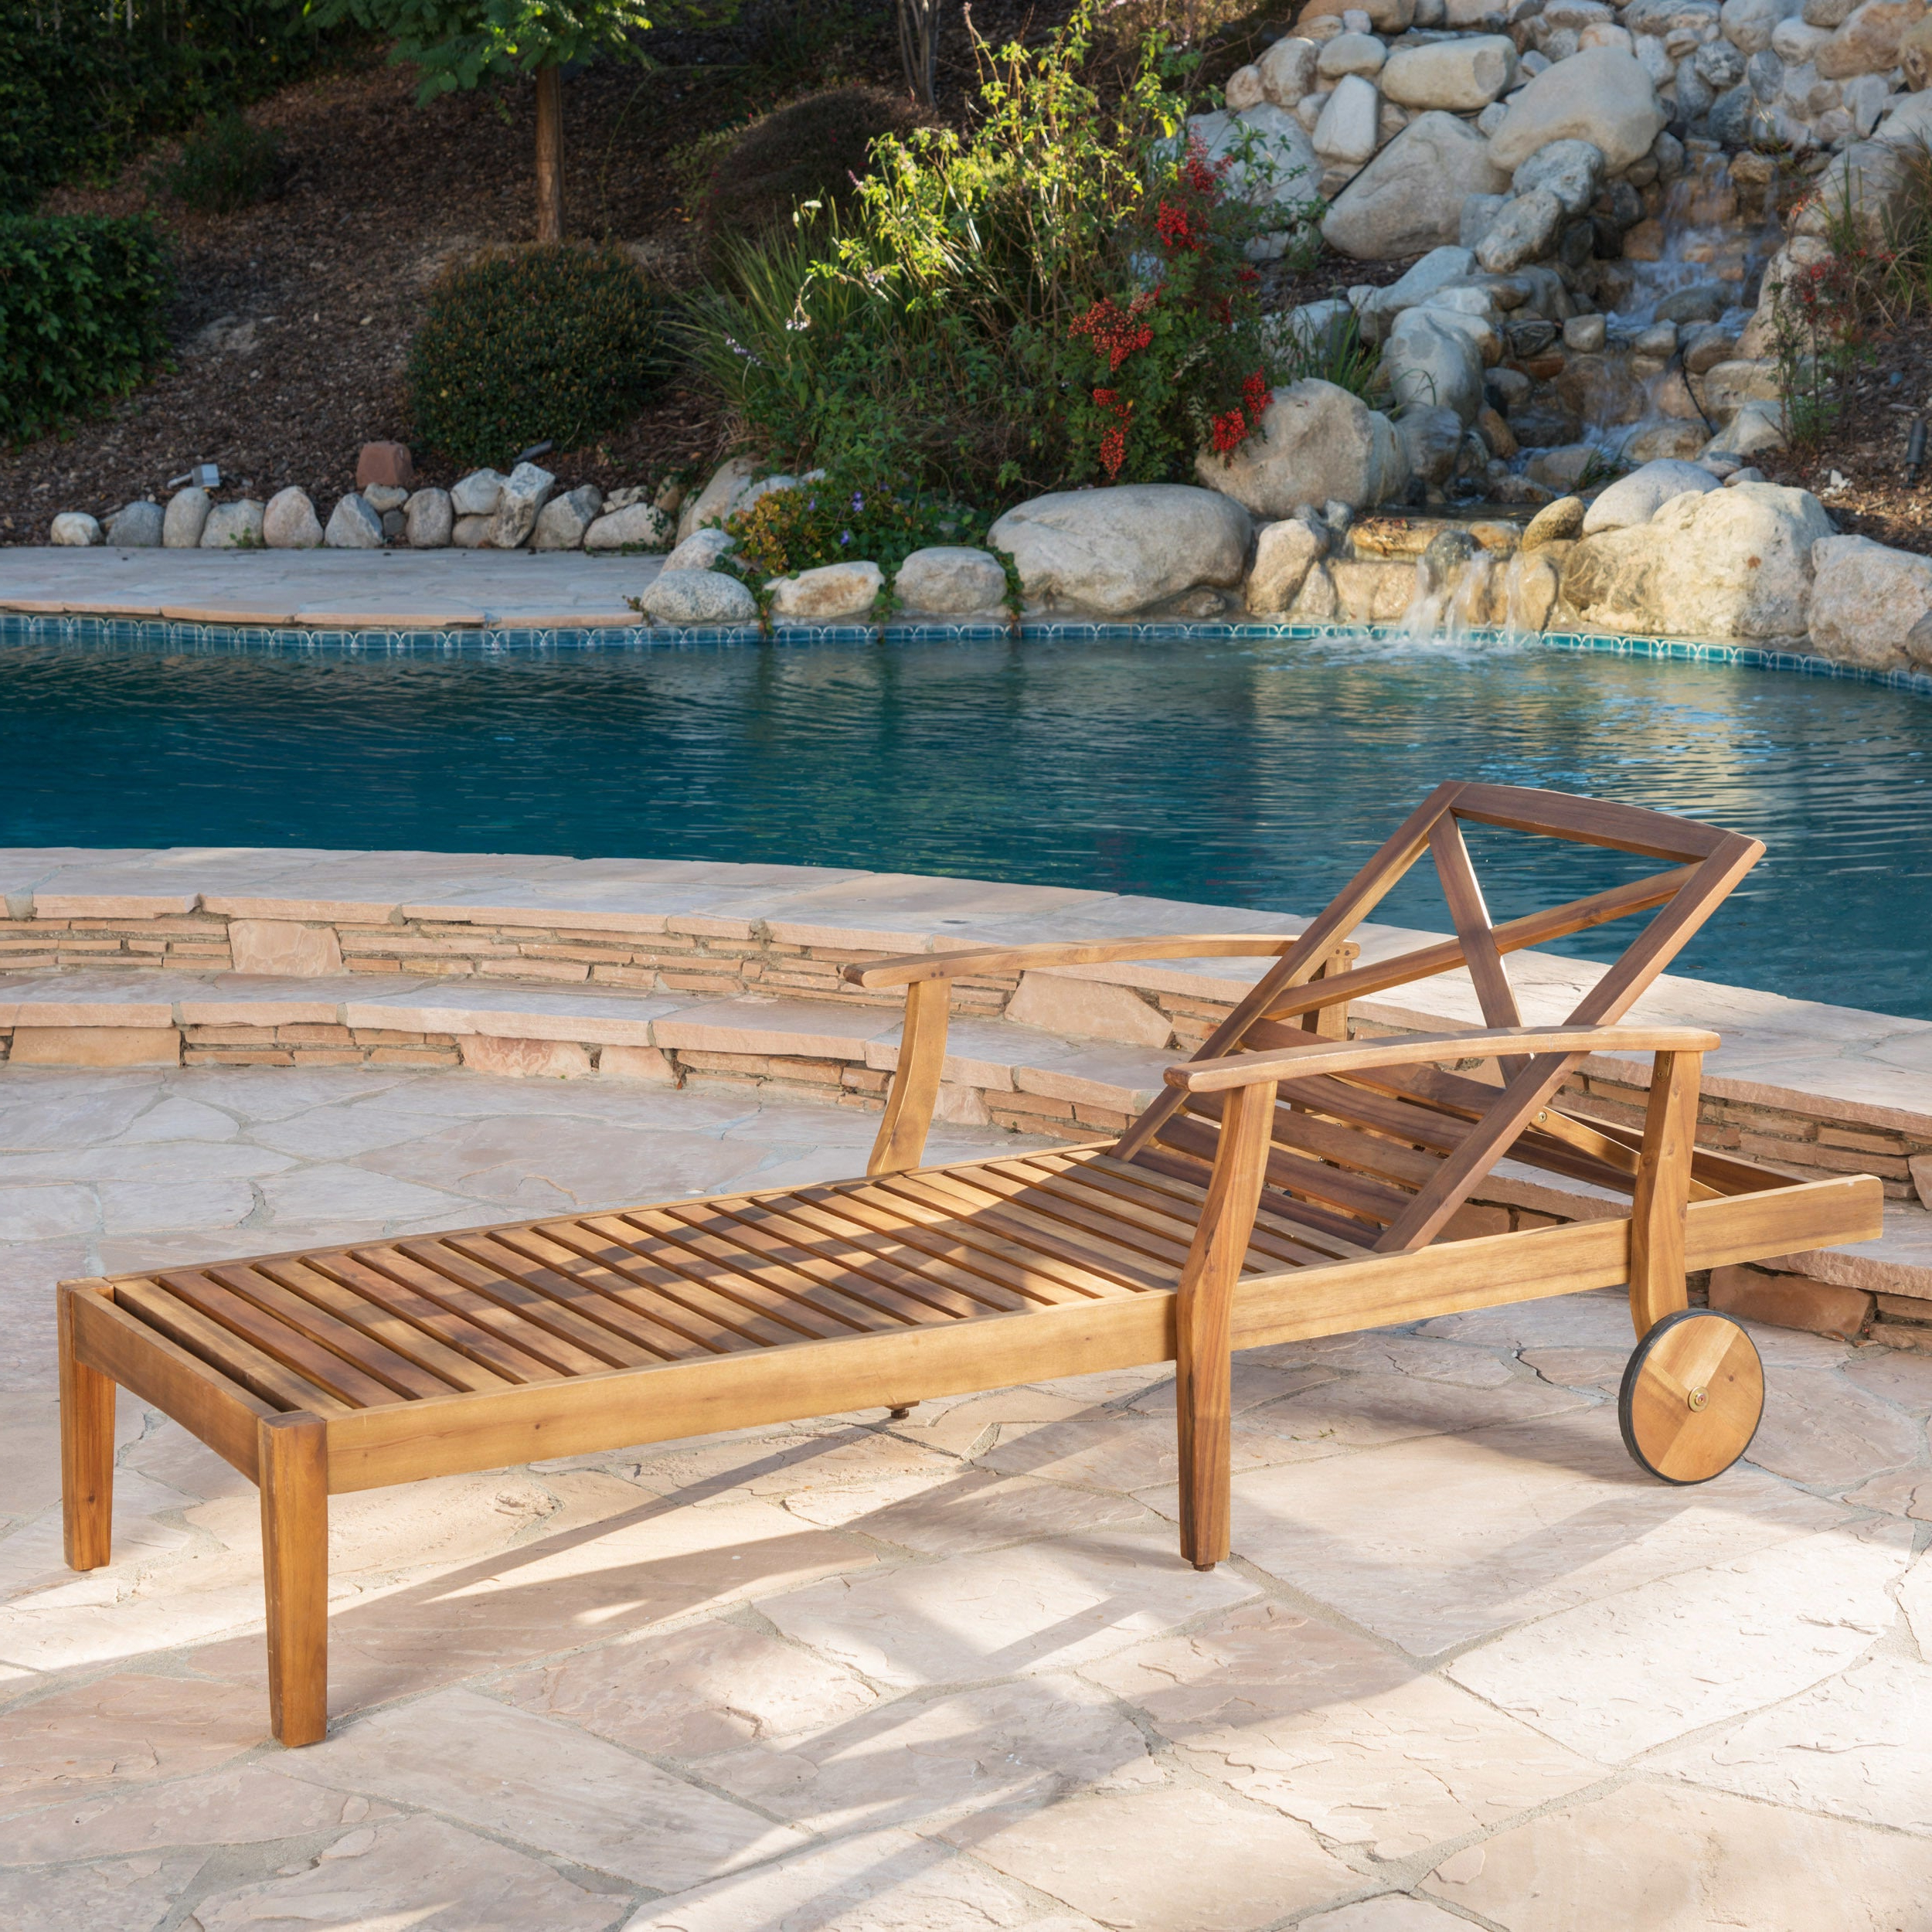 Perla Outdoor Acacia Wood Chaise Lounges Pertaining To Well Known Perla Outdoor Acacia Wood Chaise Lounge With Cushionchristopher Knight Home (View 11 of 25)